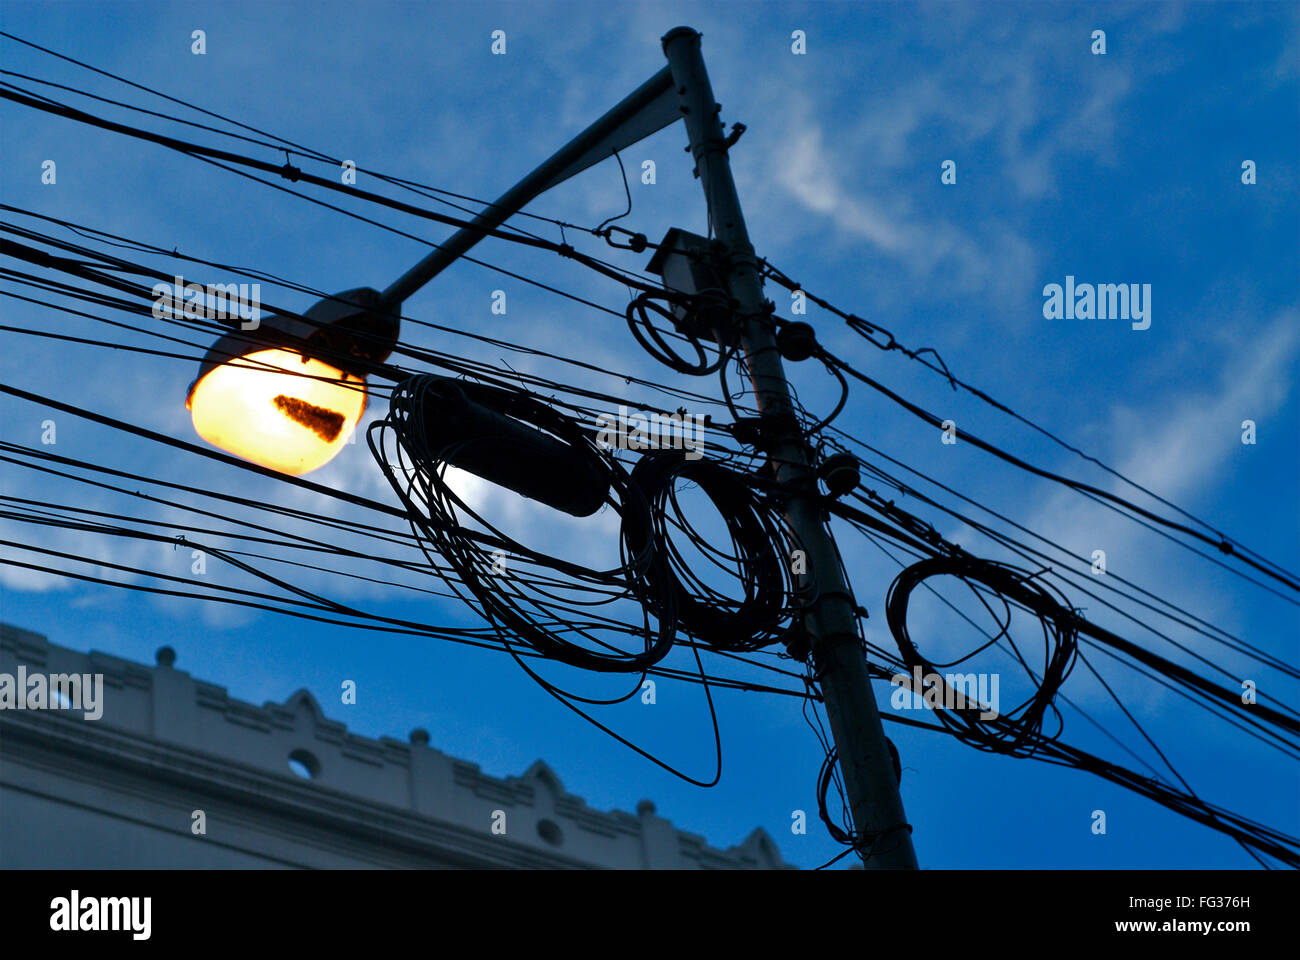 Cluster Of Wires Tied To Glowing Street Lamppost Stock Photo Wiring A Lamp Post